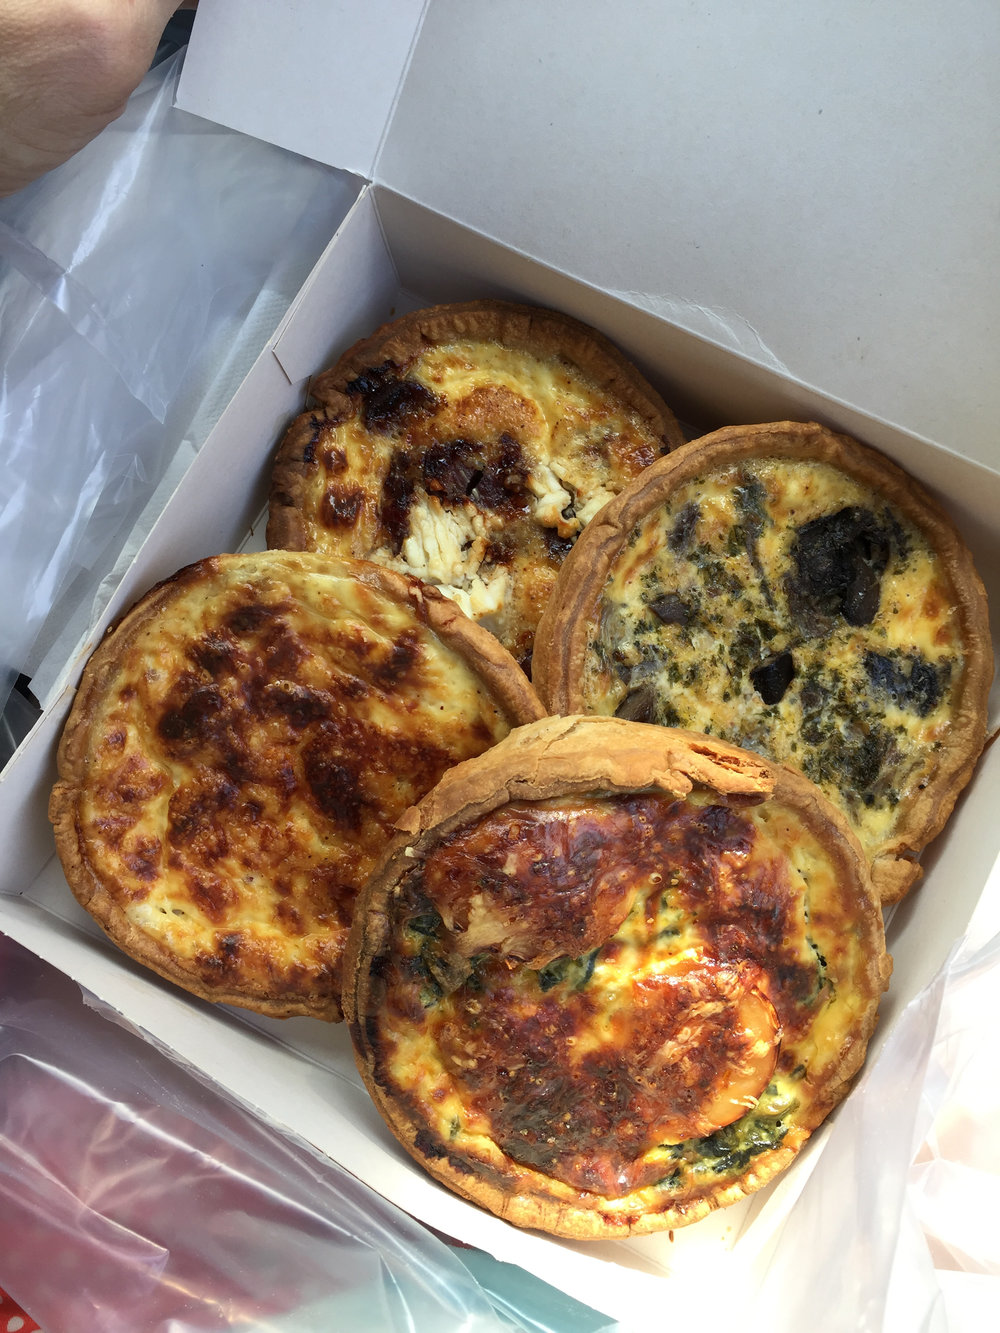 The most delicious quiches I've ever had from your average boulangerie.